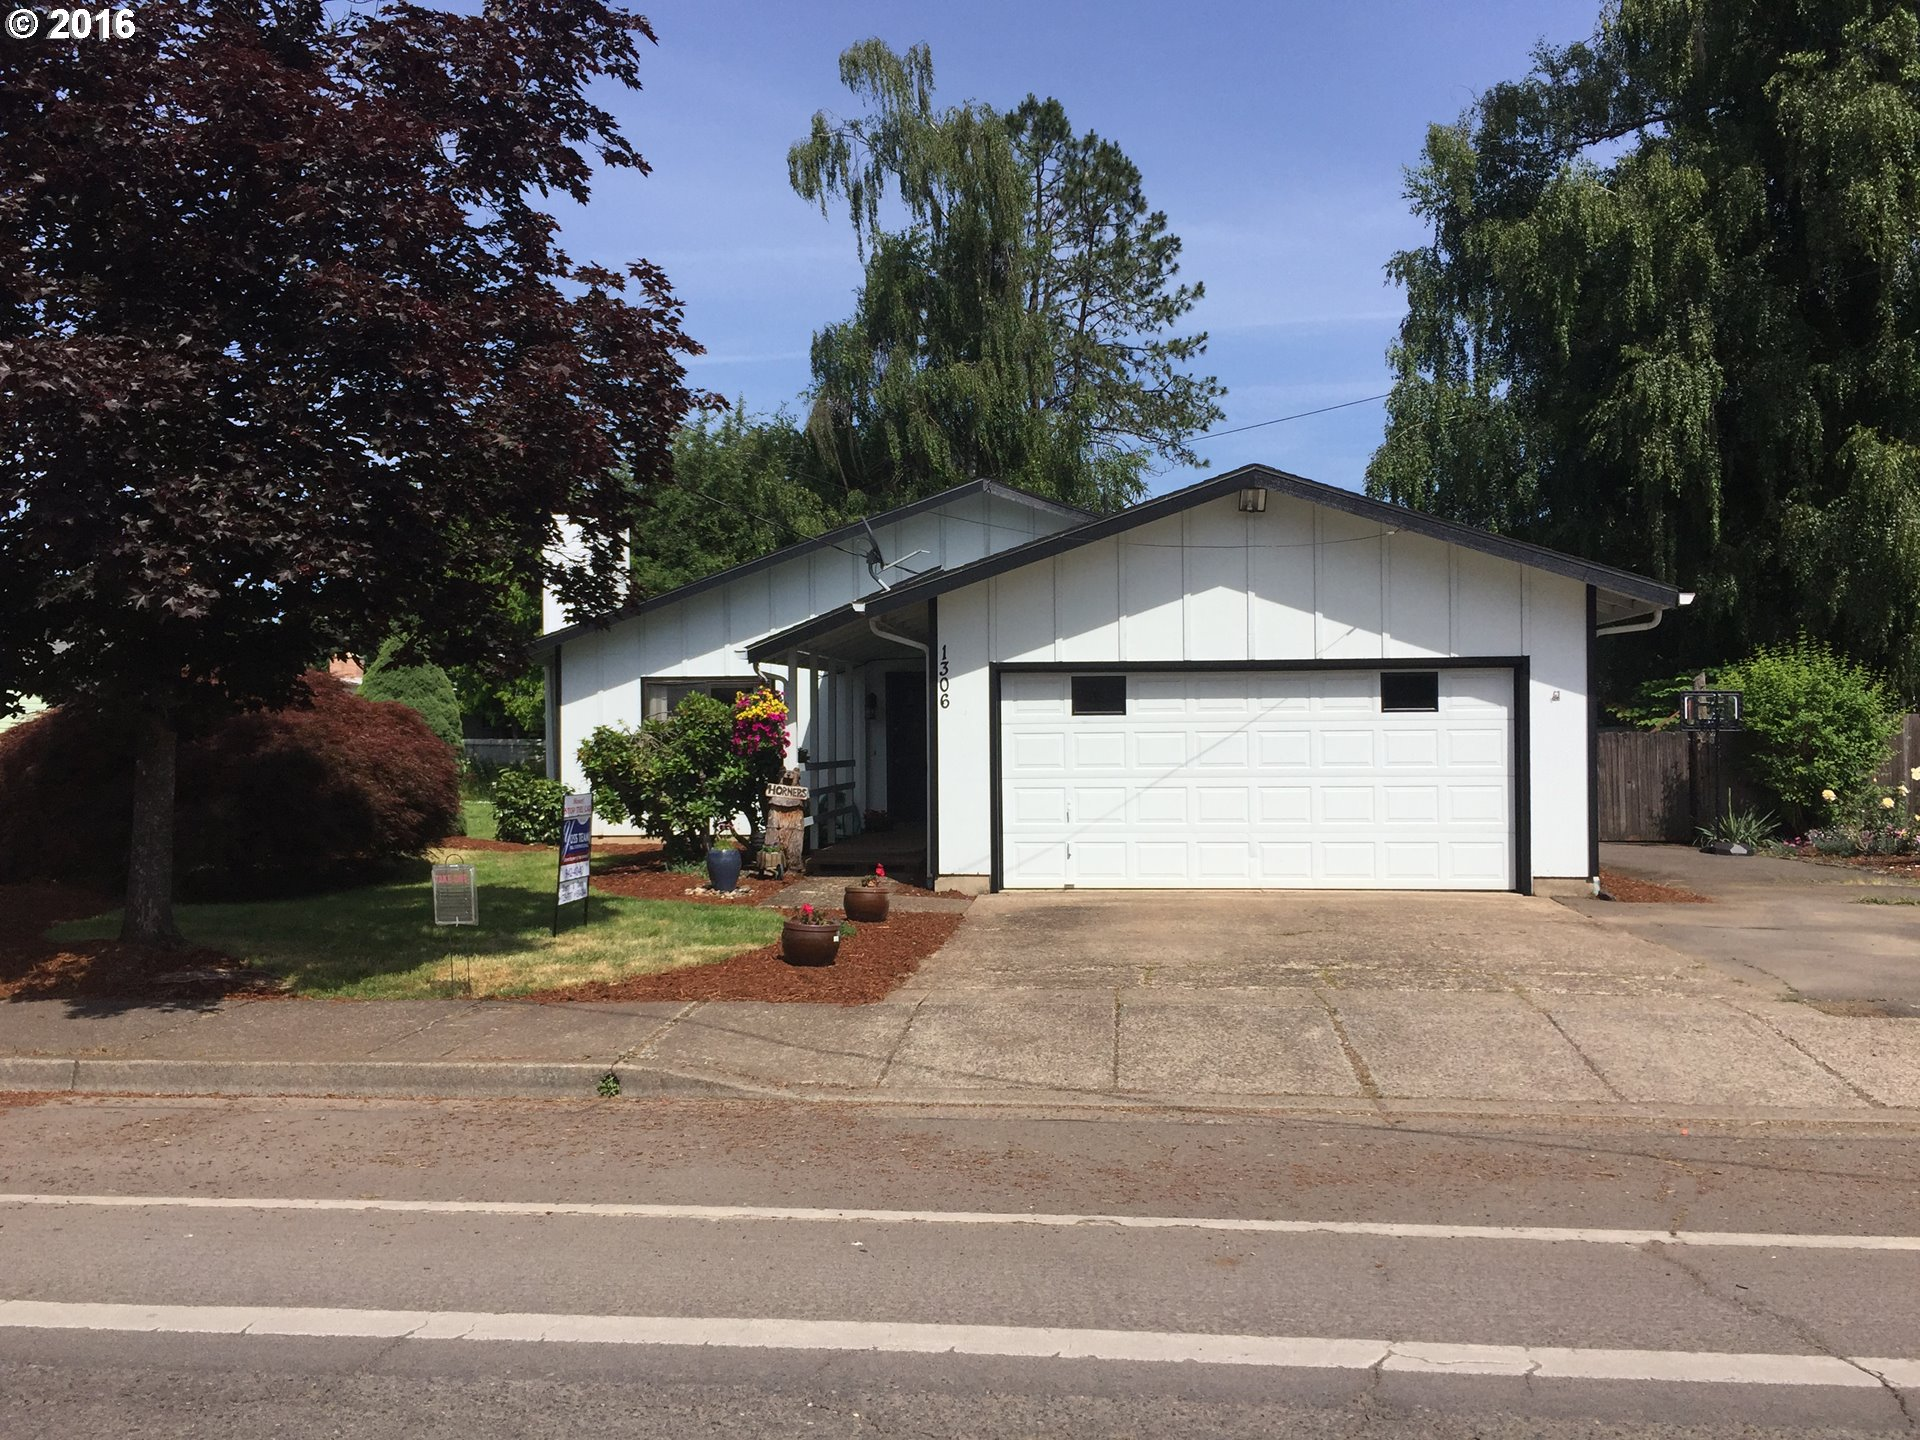 1306 S 6TH ST, Cottage Grove OR 97424